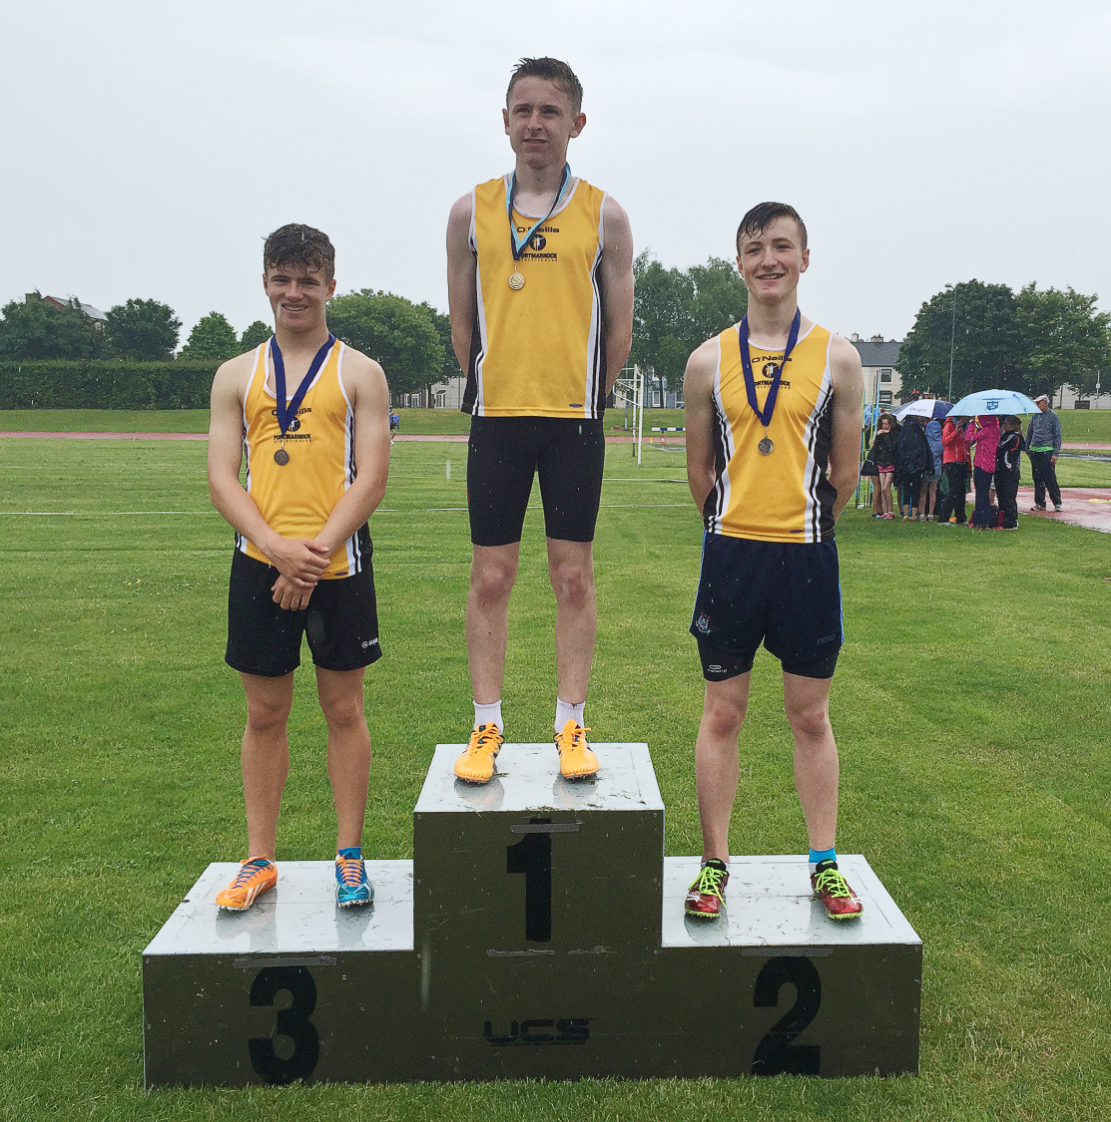 Michael Farrelly, Ronan Patterson and Conor Archer produced a clean sweep in the u15 200m at the recent Dublin Championships. The trio will now compete in Tullamore at the Nationals in July.